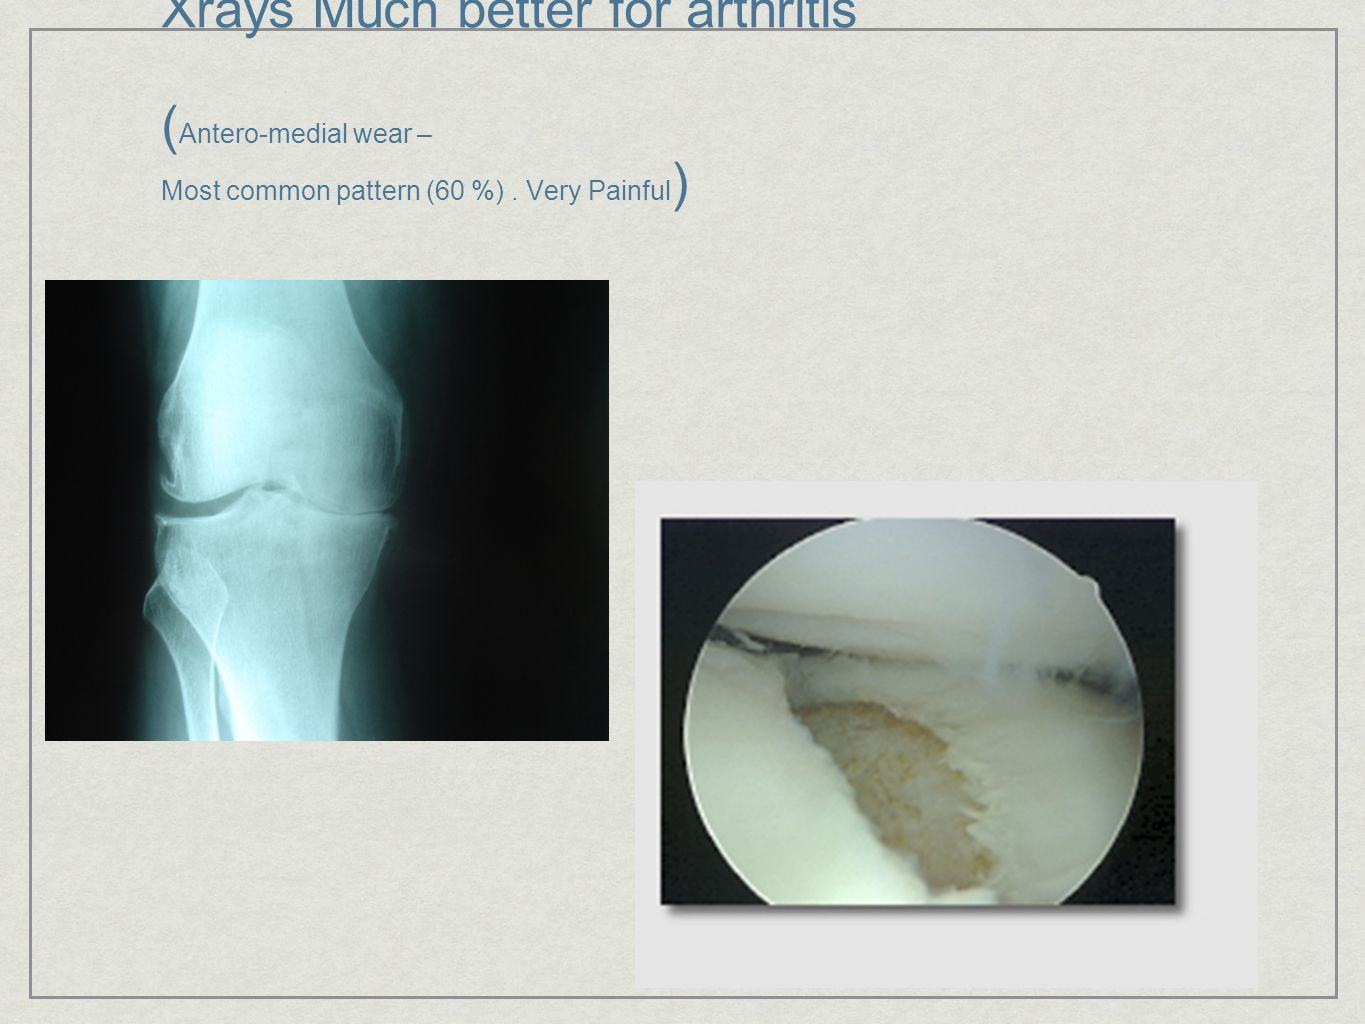 Xrays Much better for arthritis (Antero-medial wear – Most common pattern (60 %) . Very Painful)